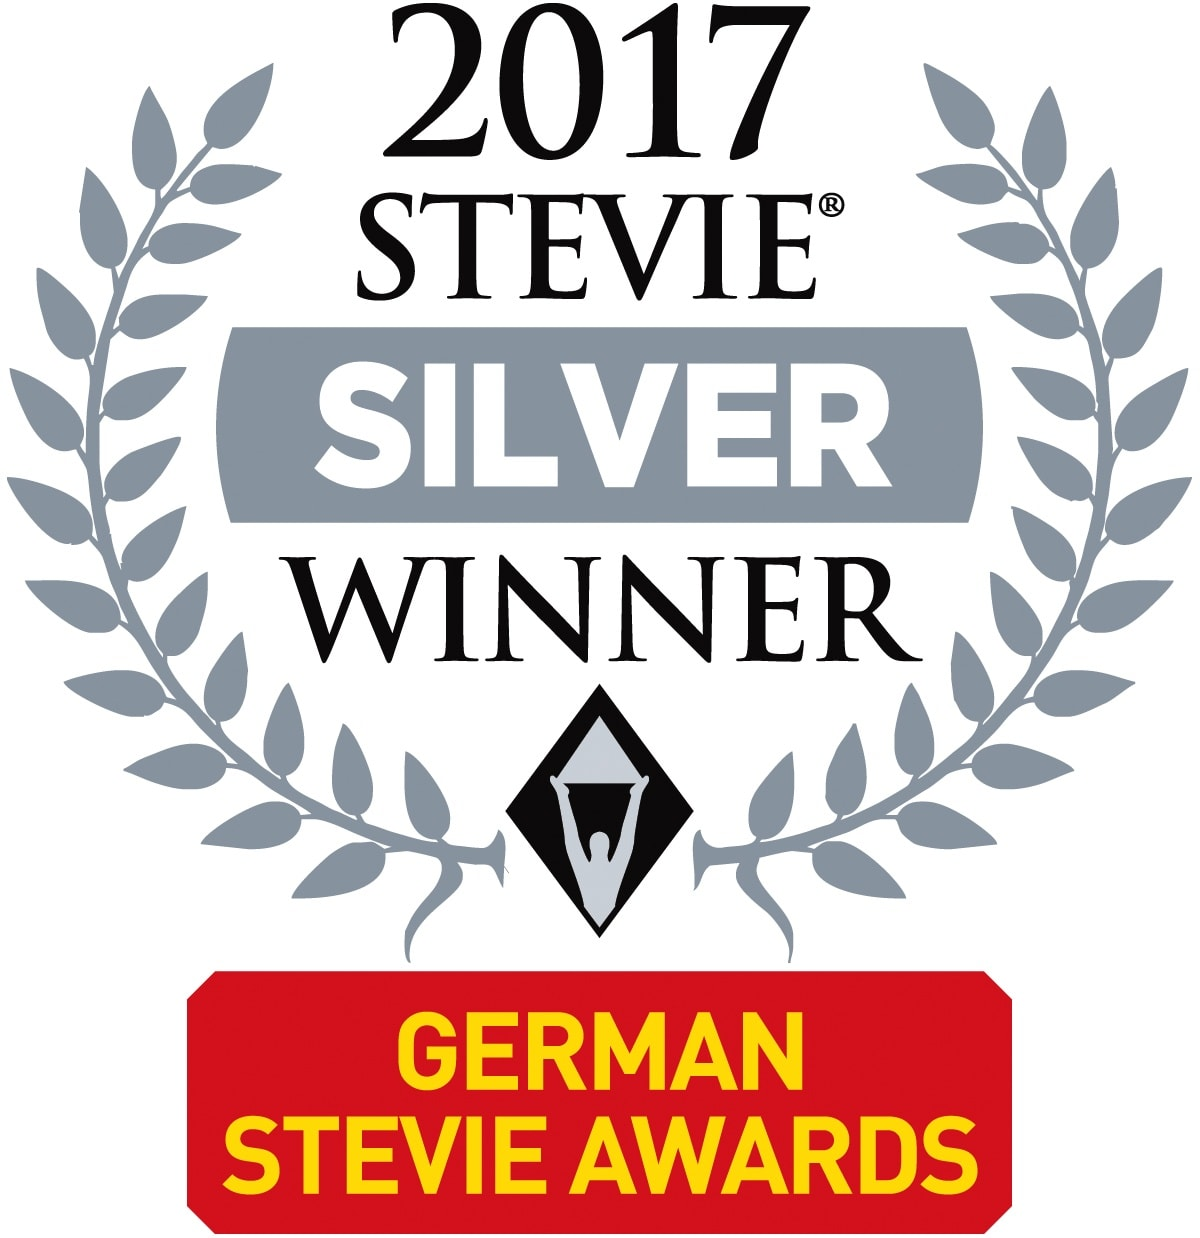 German Stevie Awards Logo: signavio 2 silver stevie awards